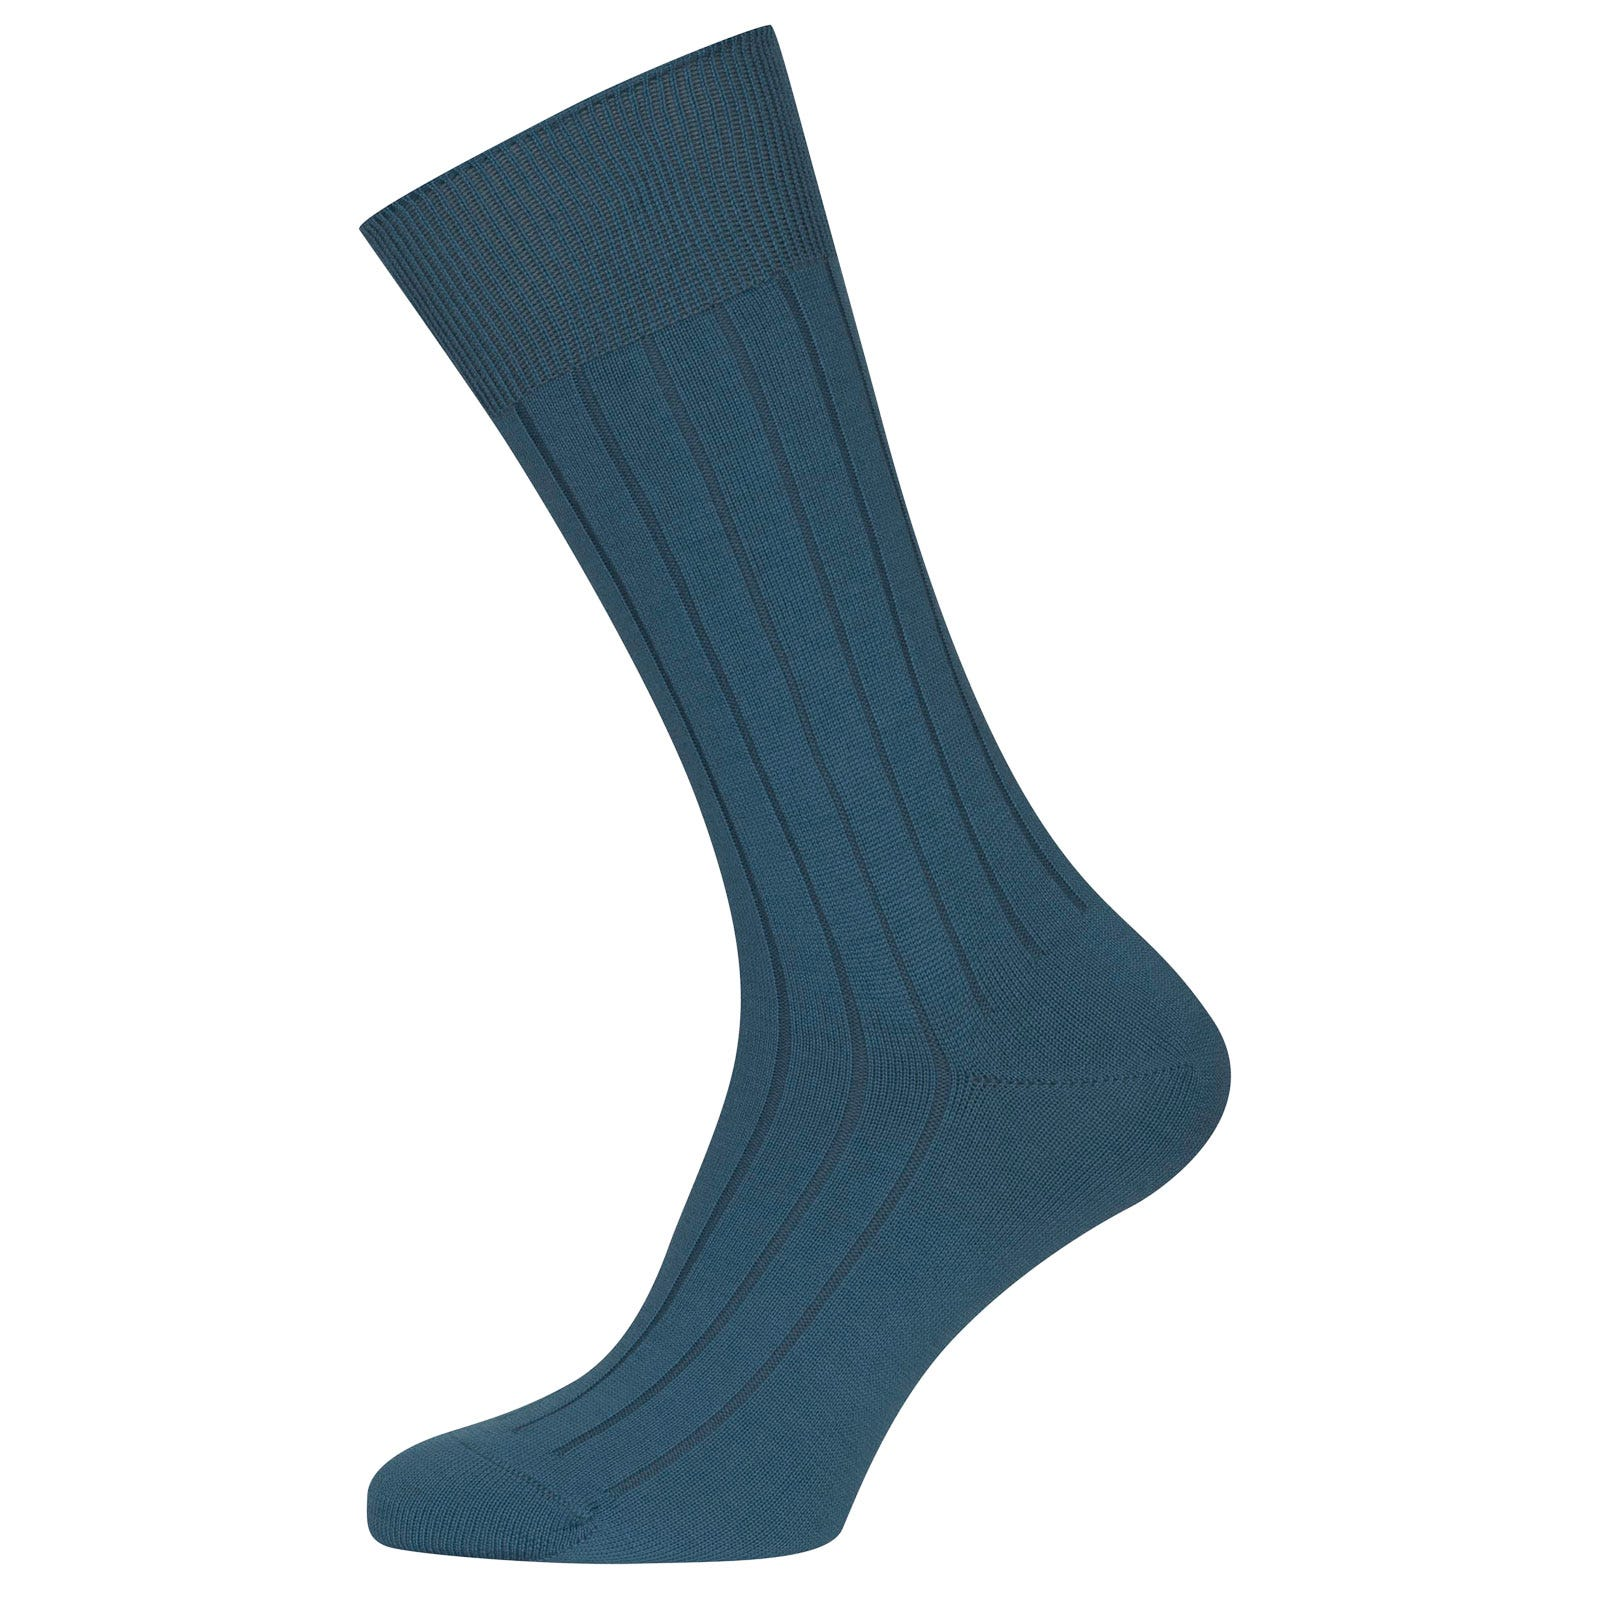 John Smedley Omega Merino Wool Socks in Bias Blue-S/M